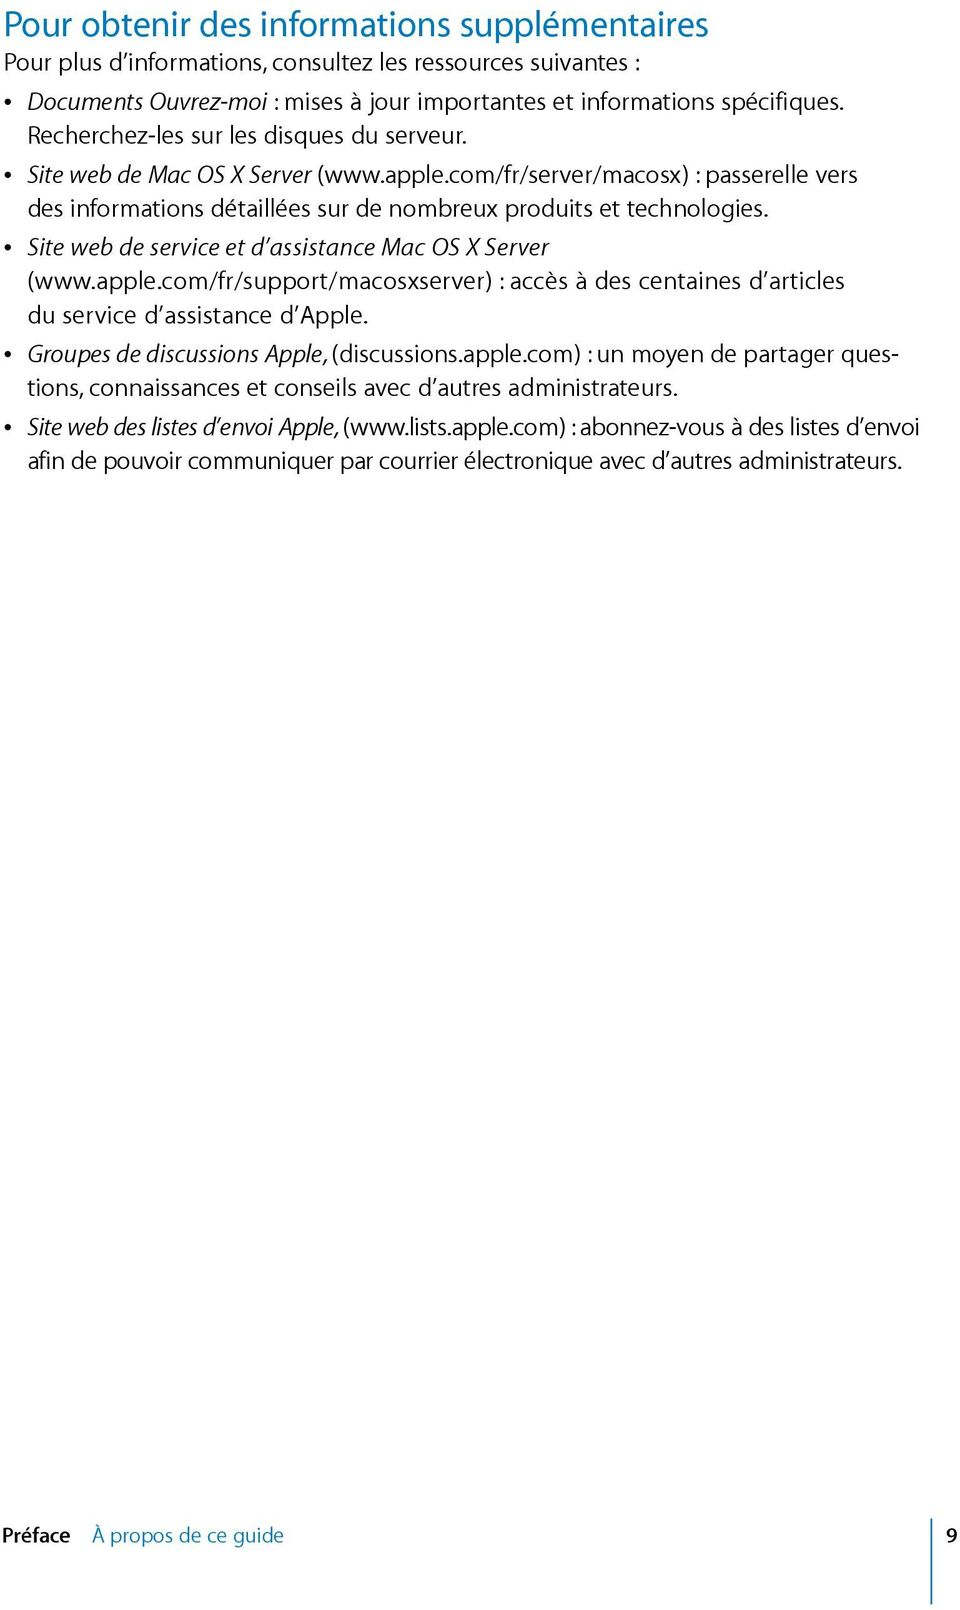 Sitewebdeserviceetd assistancemacosxserver (www.apple.com/fr/support/macosxserver):accèsàdescentainesd articles duserviced assistanced Apple.  GroupesdediscussionsApple,(discussions.apple.com):unmoyendepartagerquestions,connaissancesetconseilsavecd autresadministrateurs.